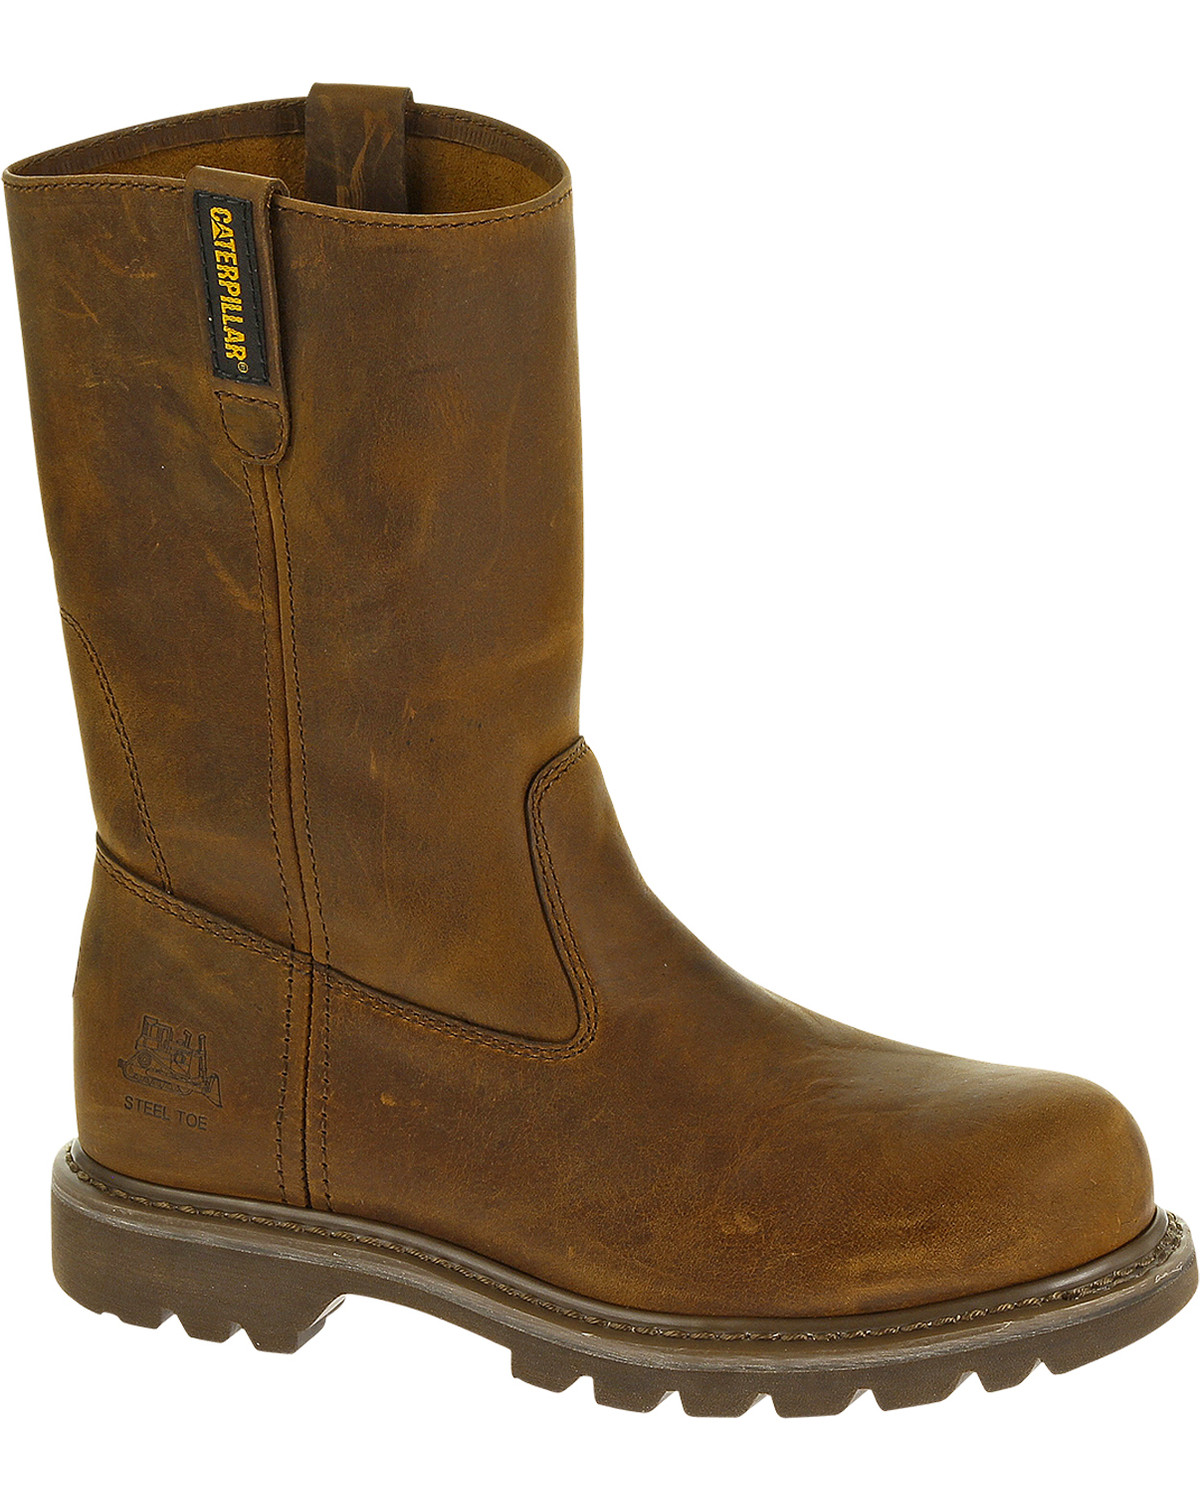 5a7ca13849cf Zoomed Image CAT Women's Revolver Steel Toe Work Boots, Brown, hi-res